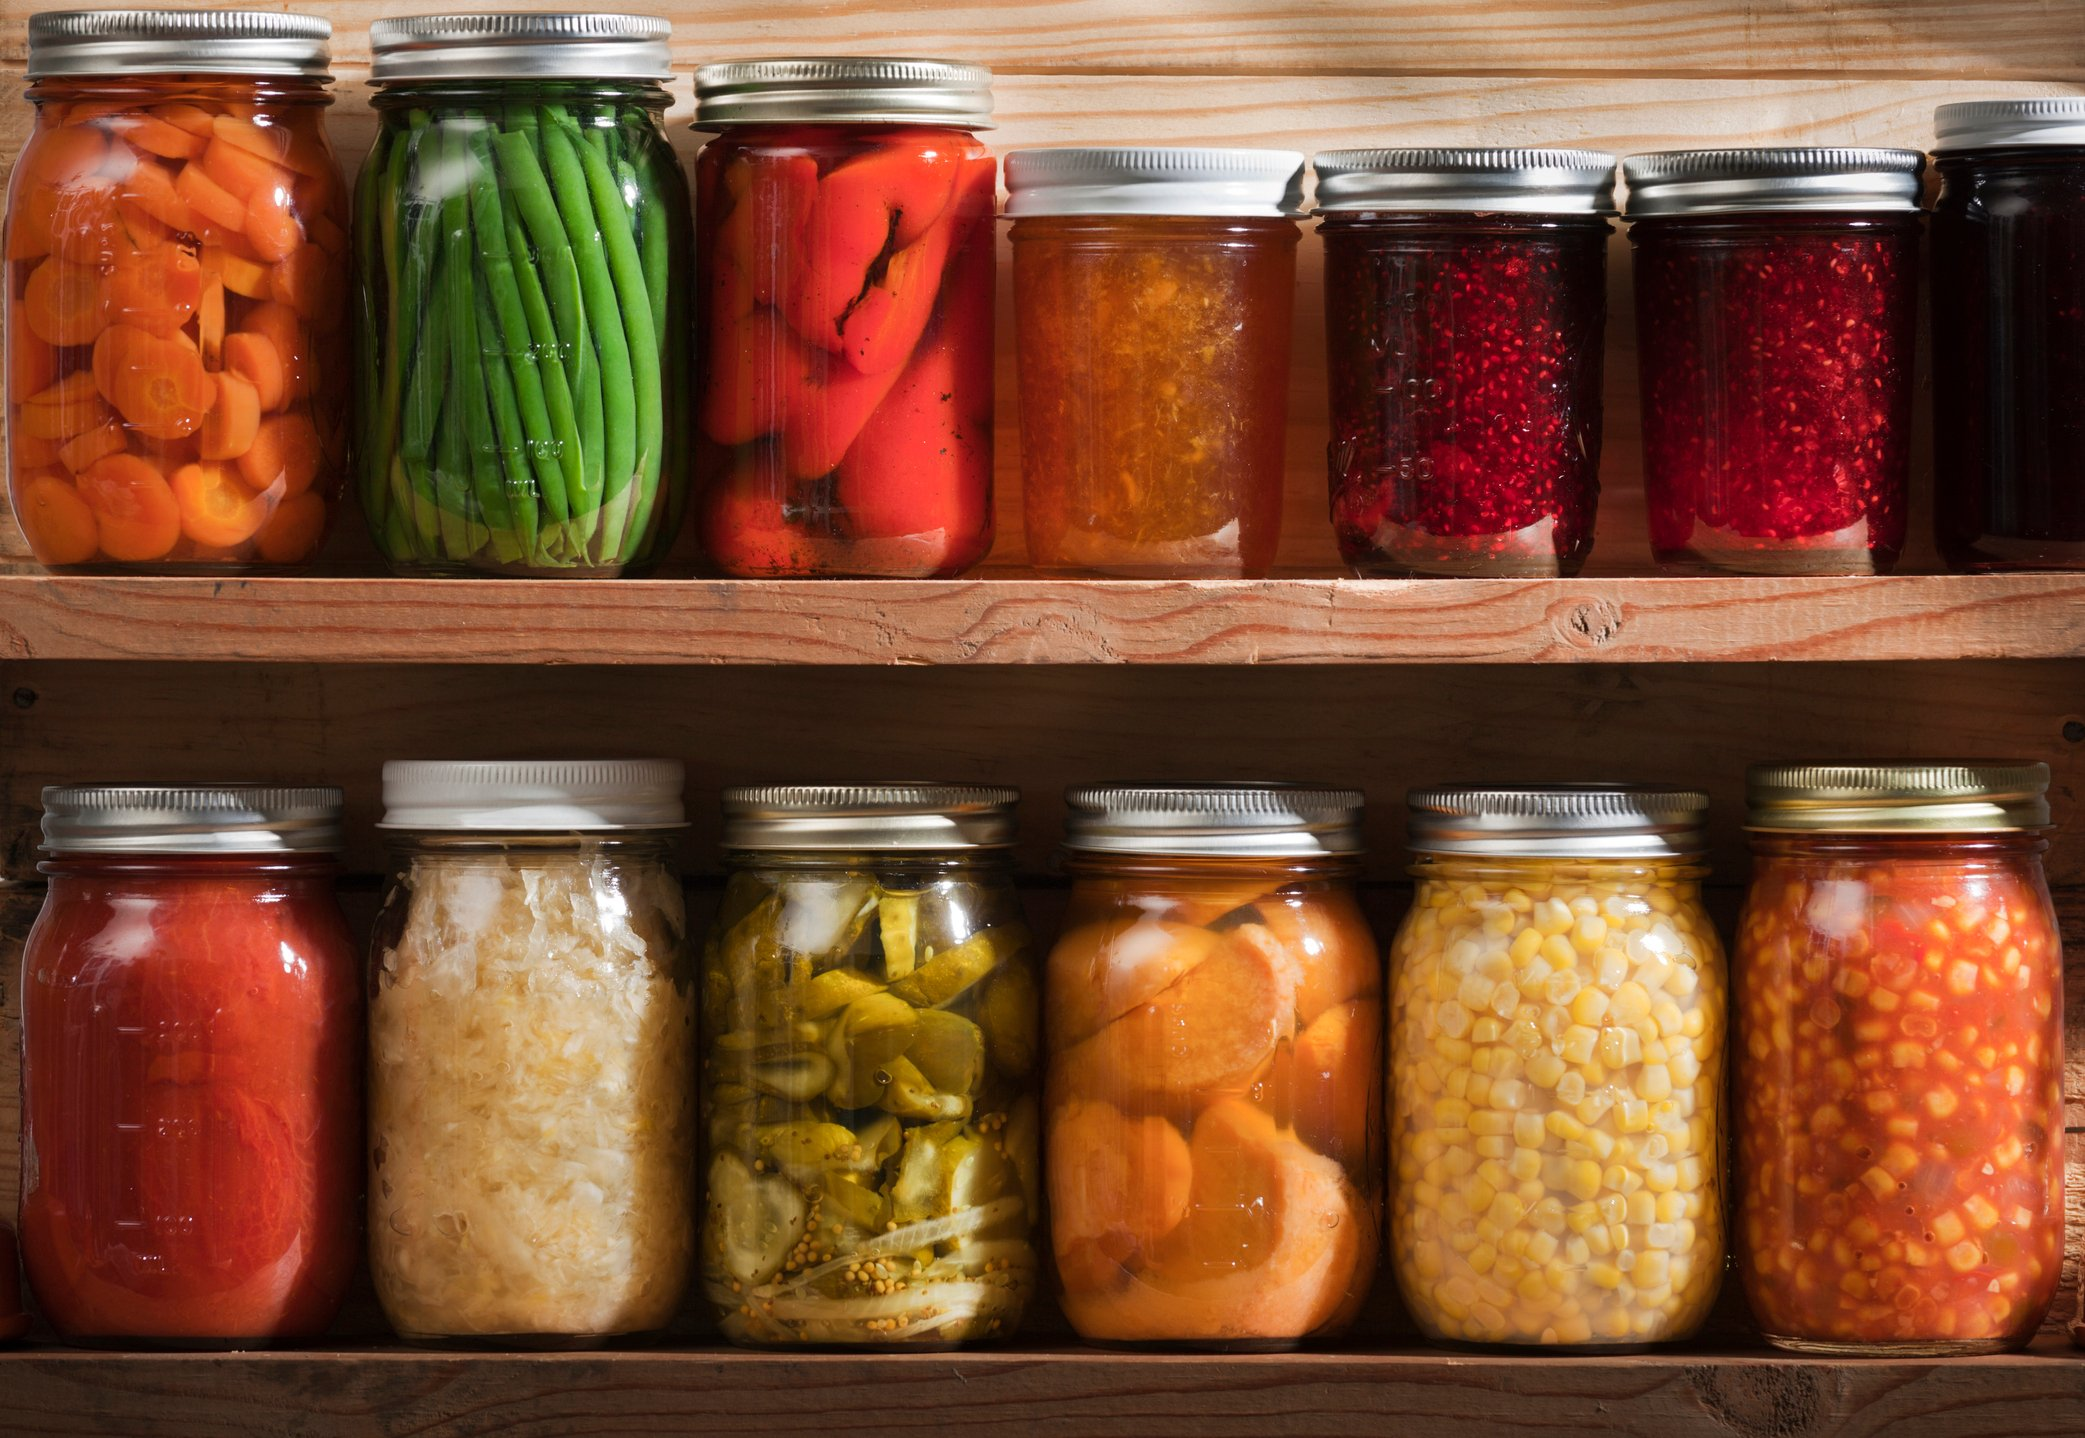 Pickles are rich in probiotics, but they can be troublesome for the stomach with their high acidity and salt content. (iStock Photo)